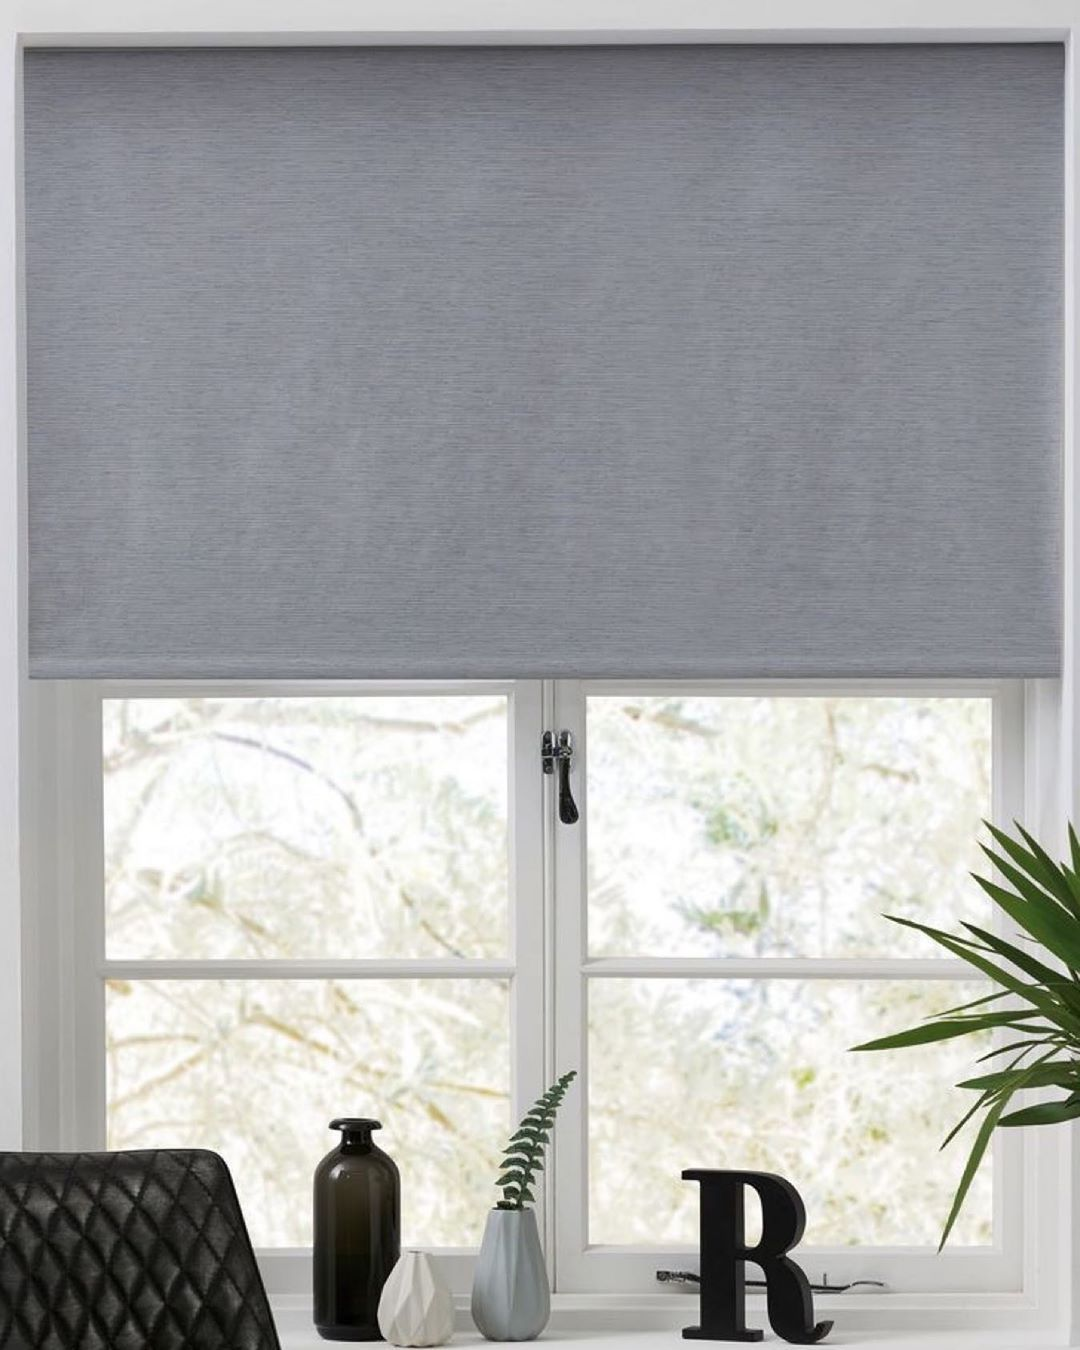 Blackout Blinds Are Perfect For The Summer Time Are You Struggling To Sleep Due To The Ea Roller Blinds Living Room Blackout Roller Blinds Roller Blinds